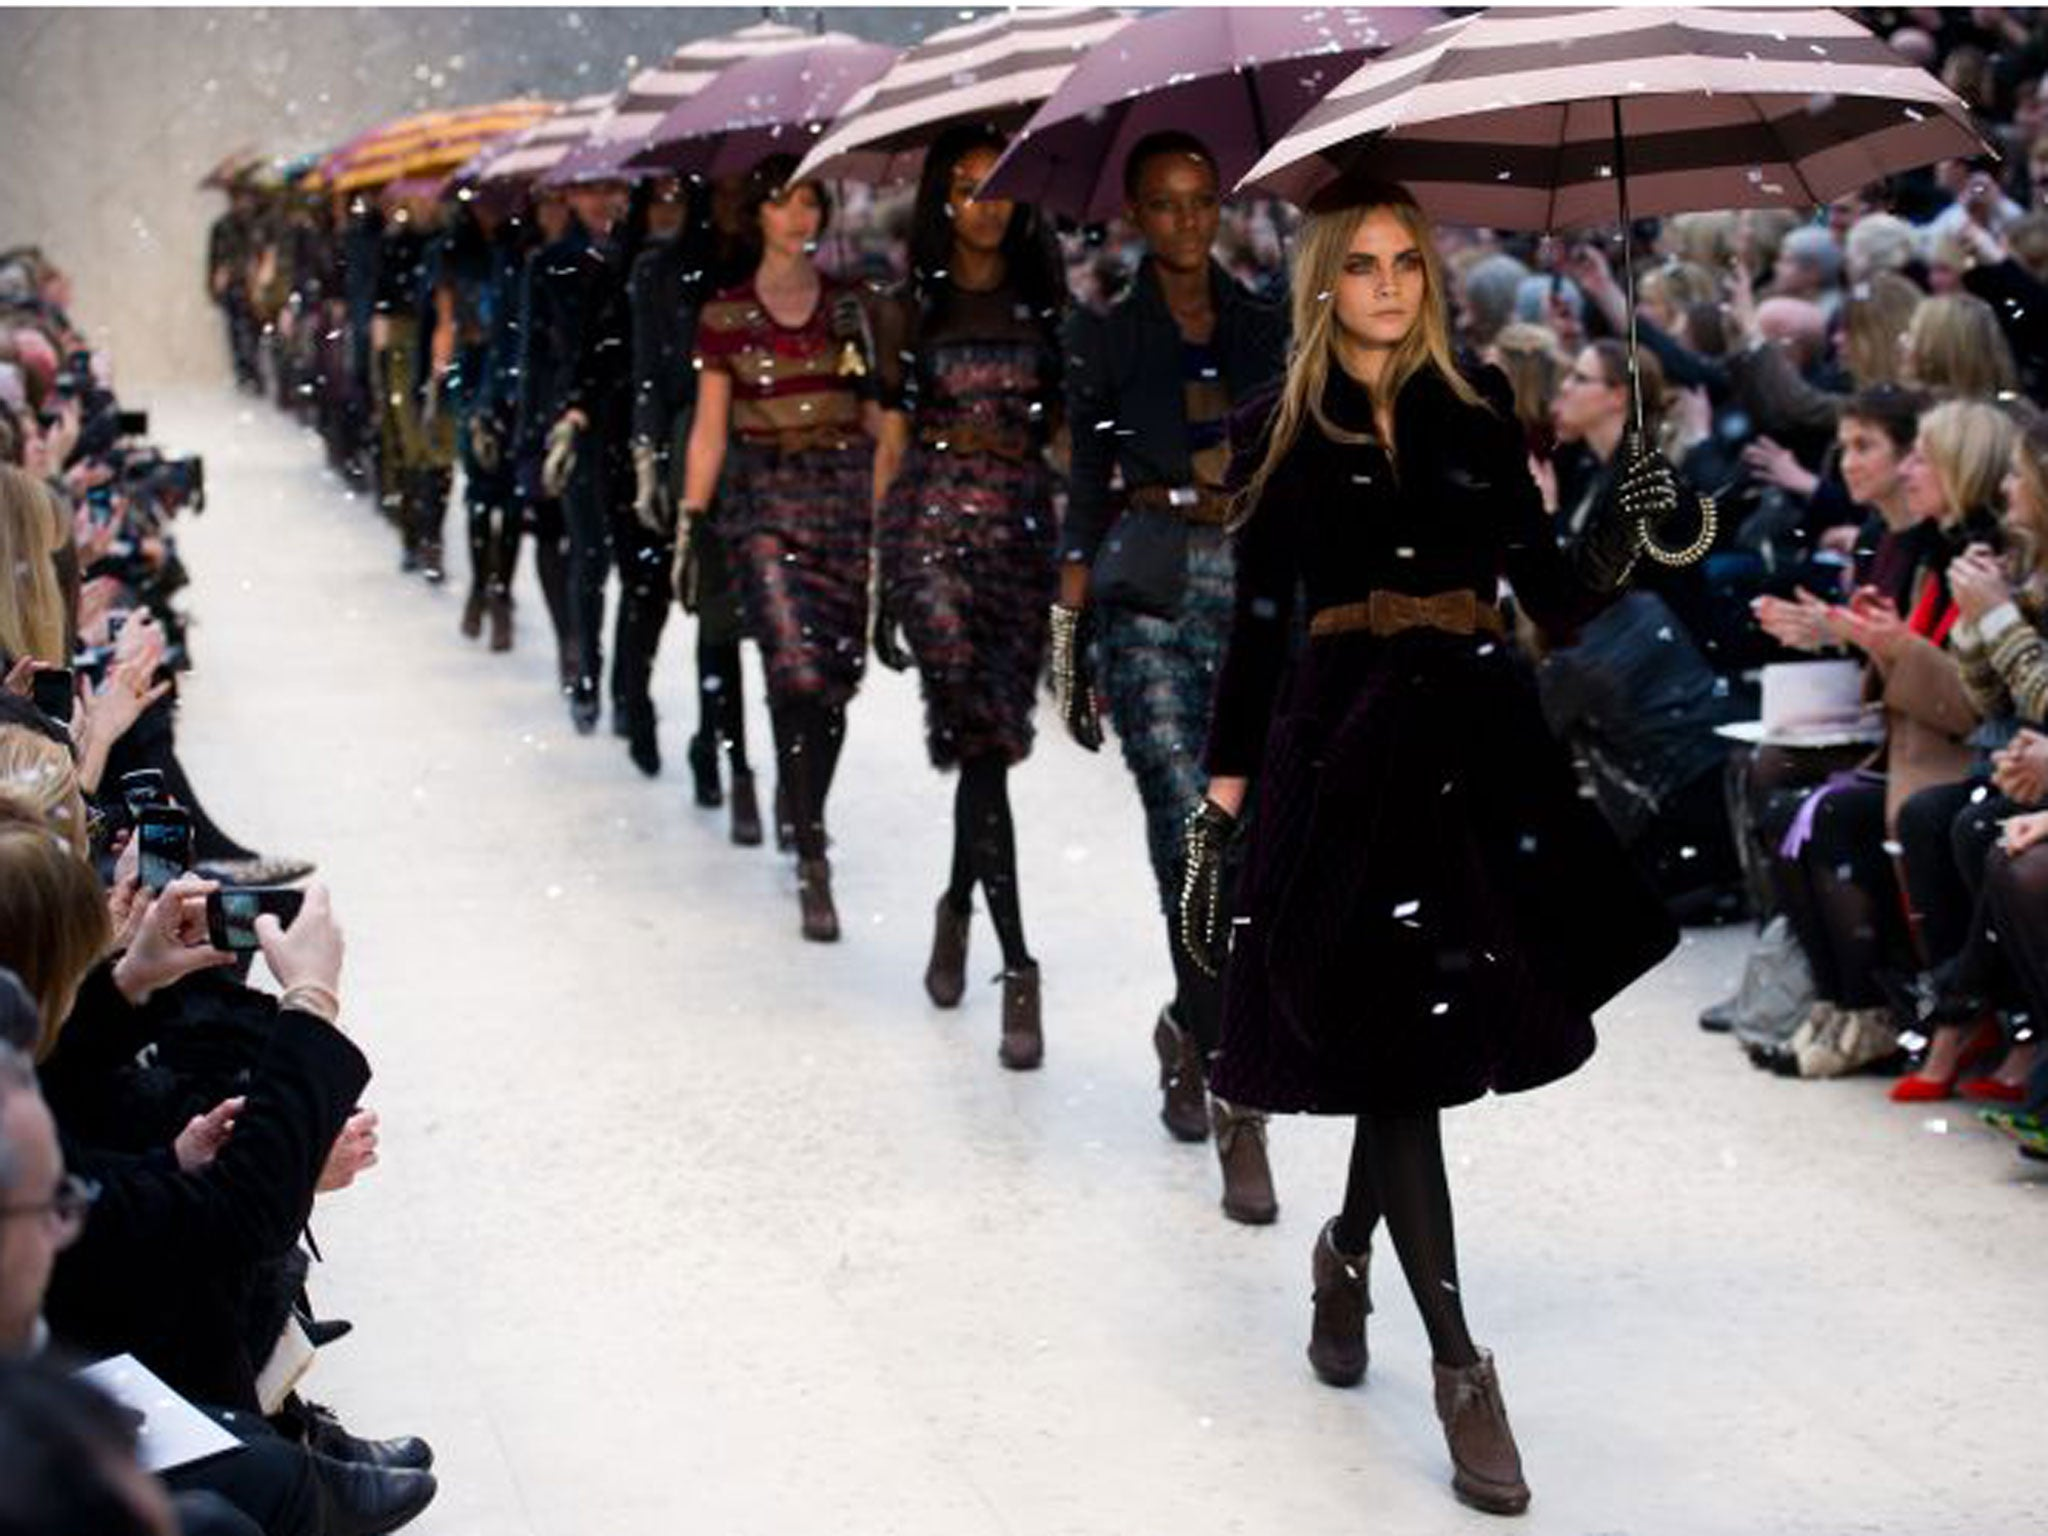 all runways lead to cara delevingne but whats so special about the